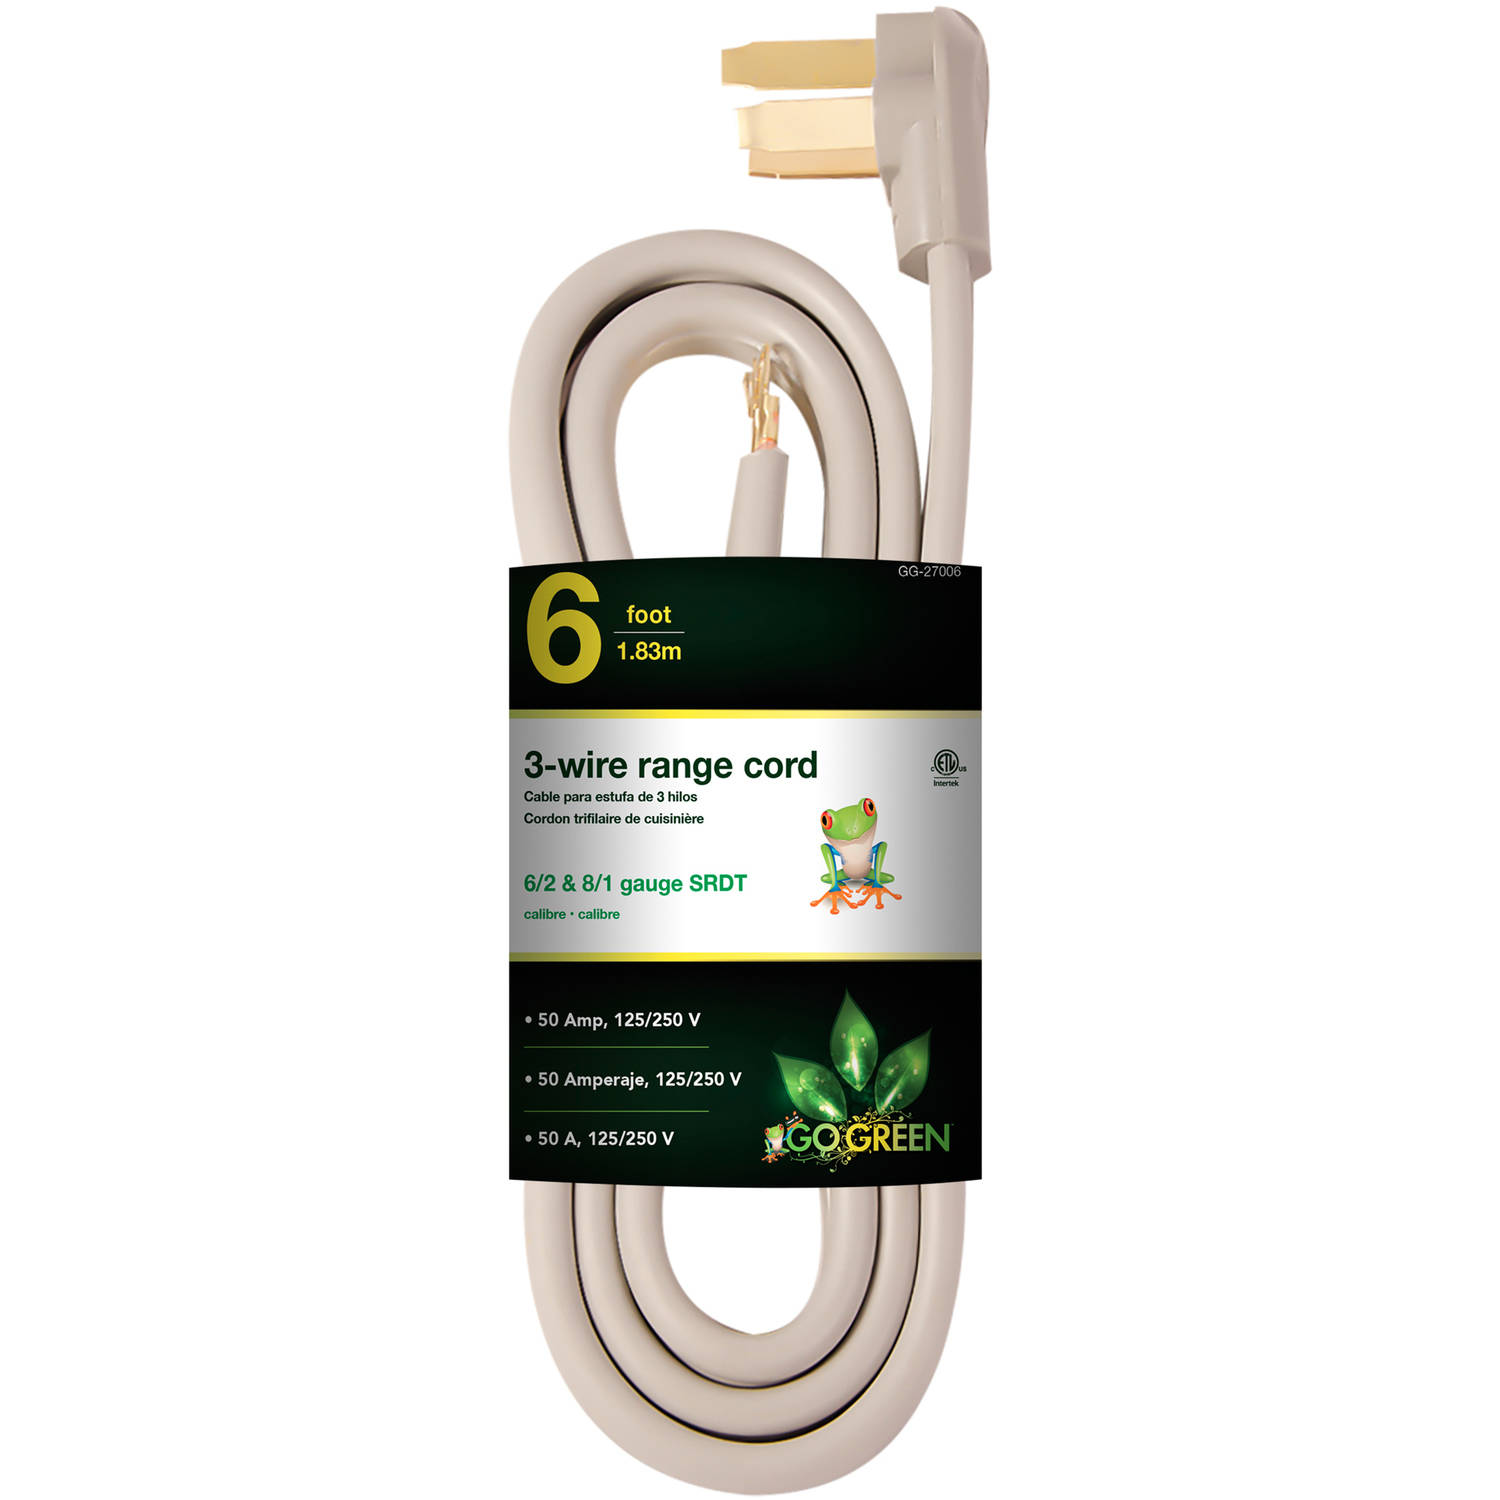 GoGreen Power 6' 3-Wire Range Cord, Gray, 27006